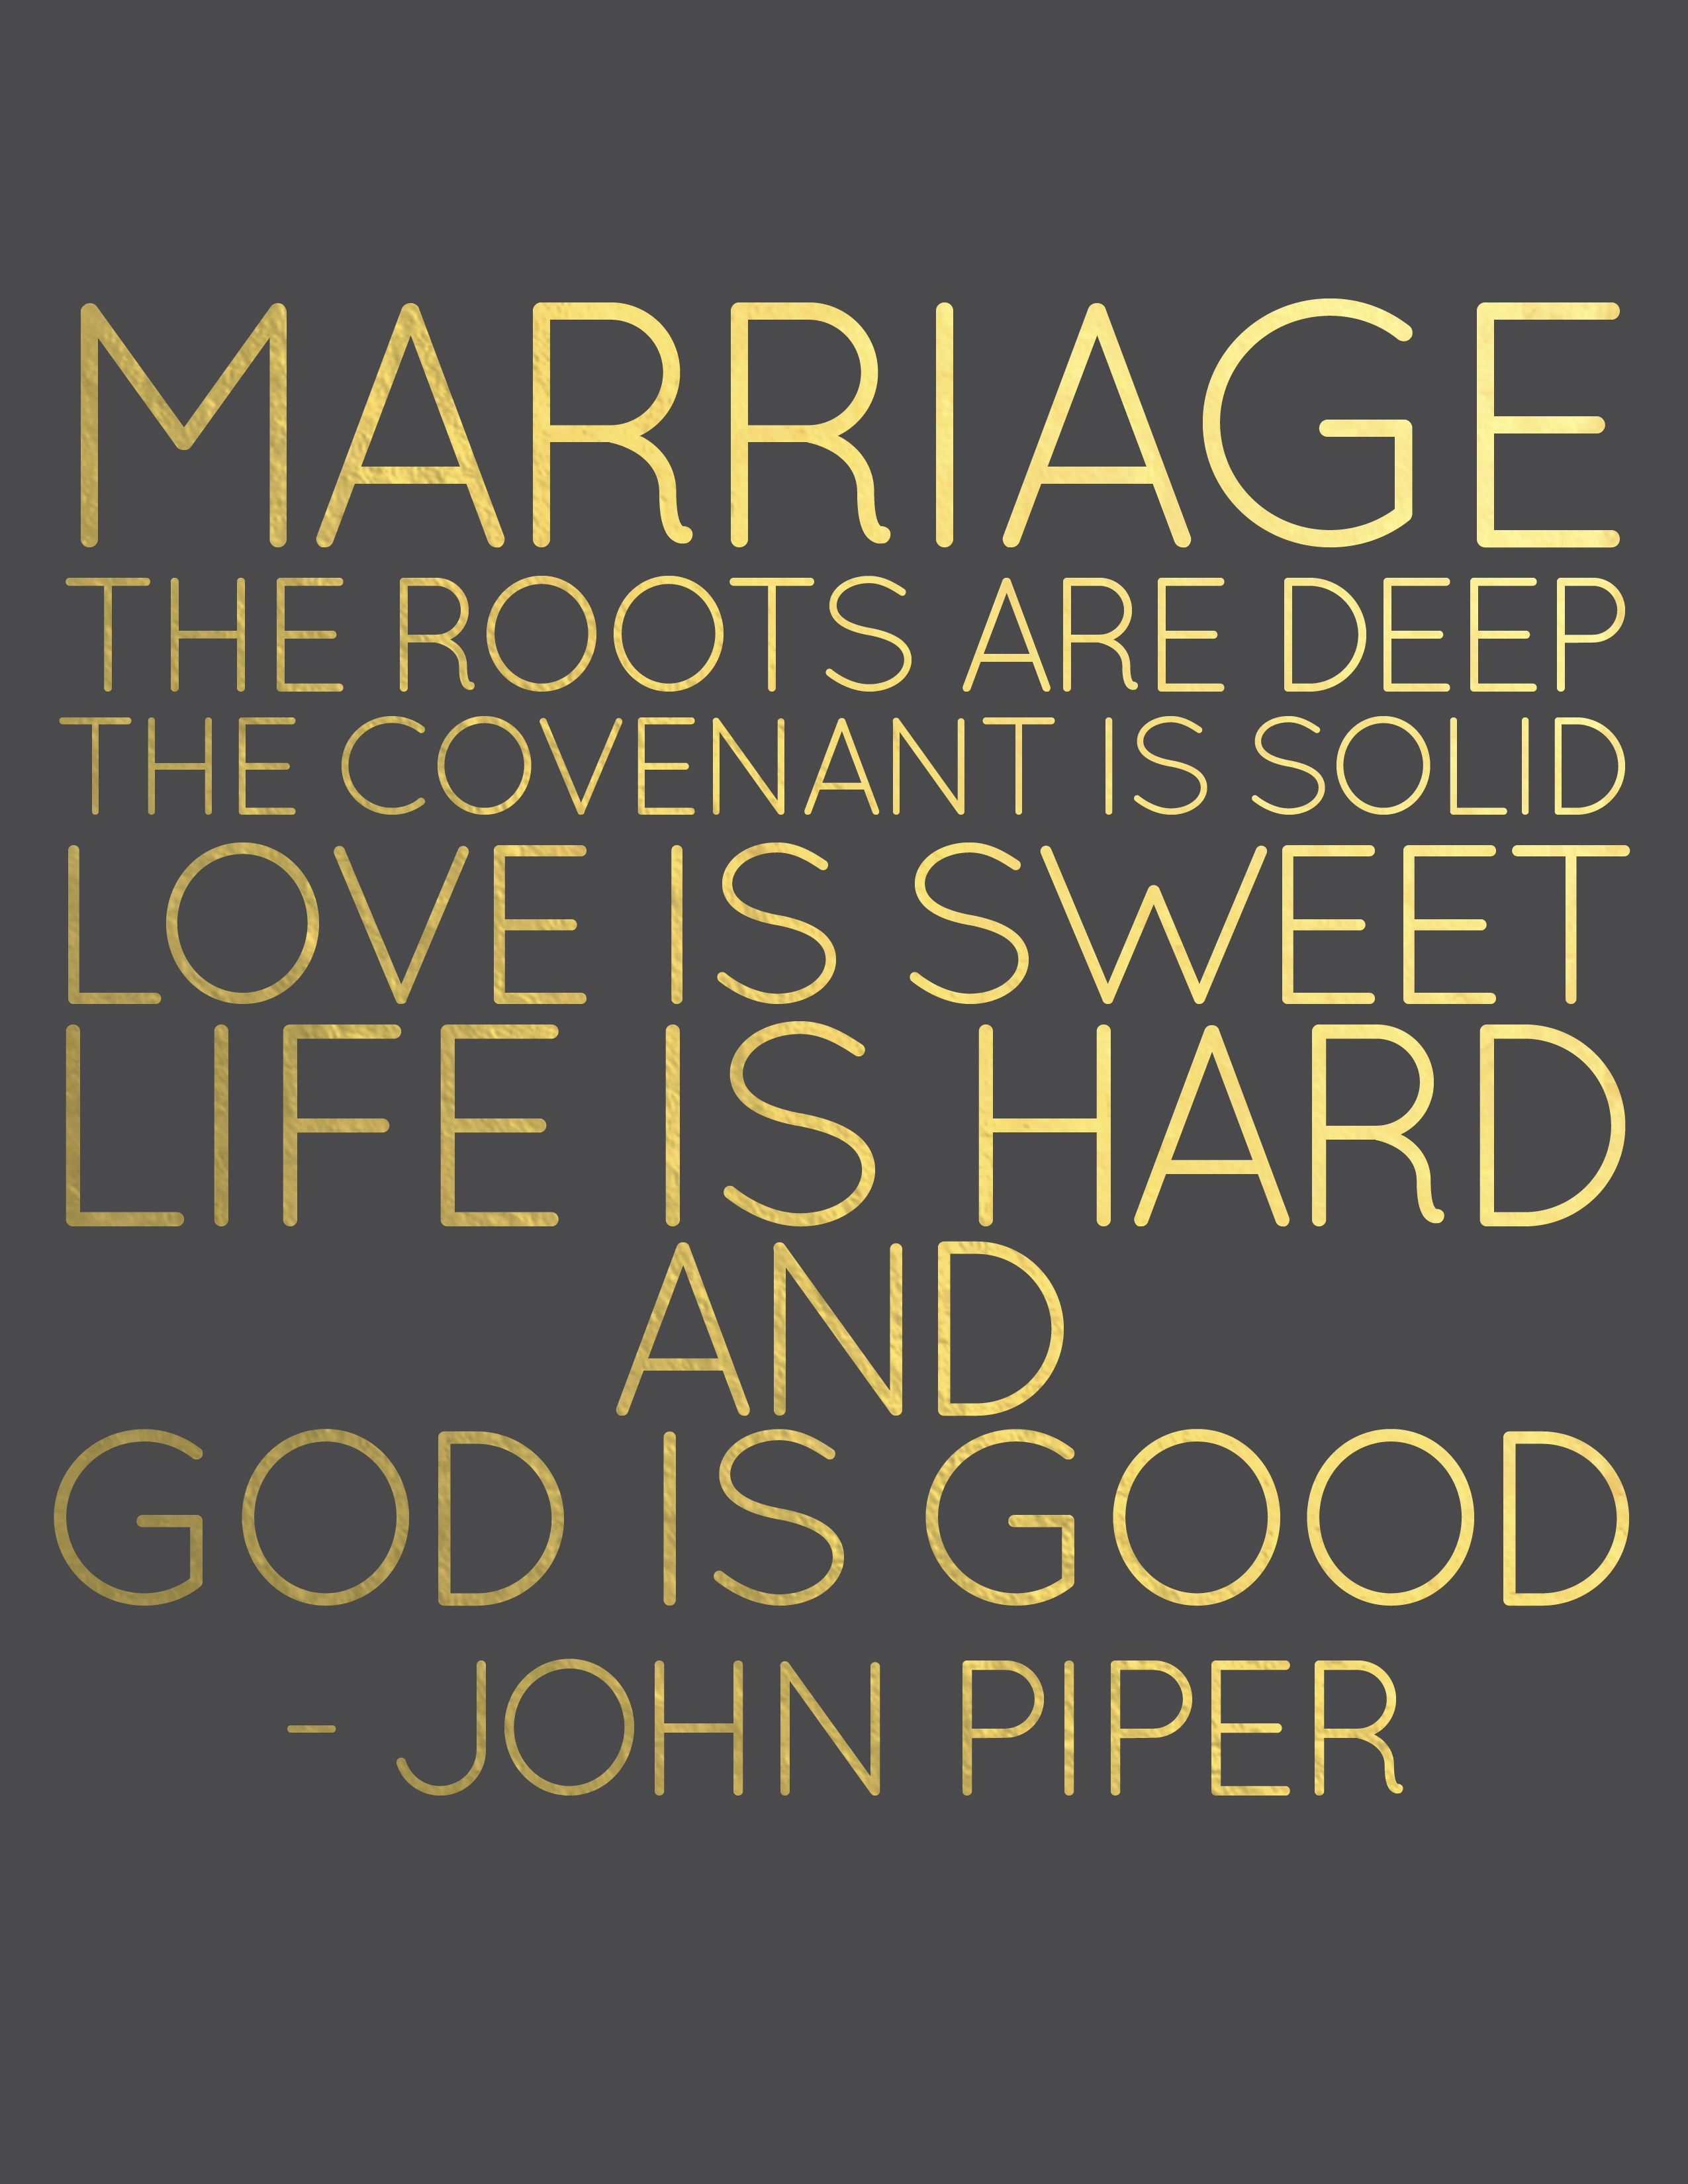 Marriage Quote John Piper Black And Gold Lettering Lenaephotography Weddings Words